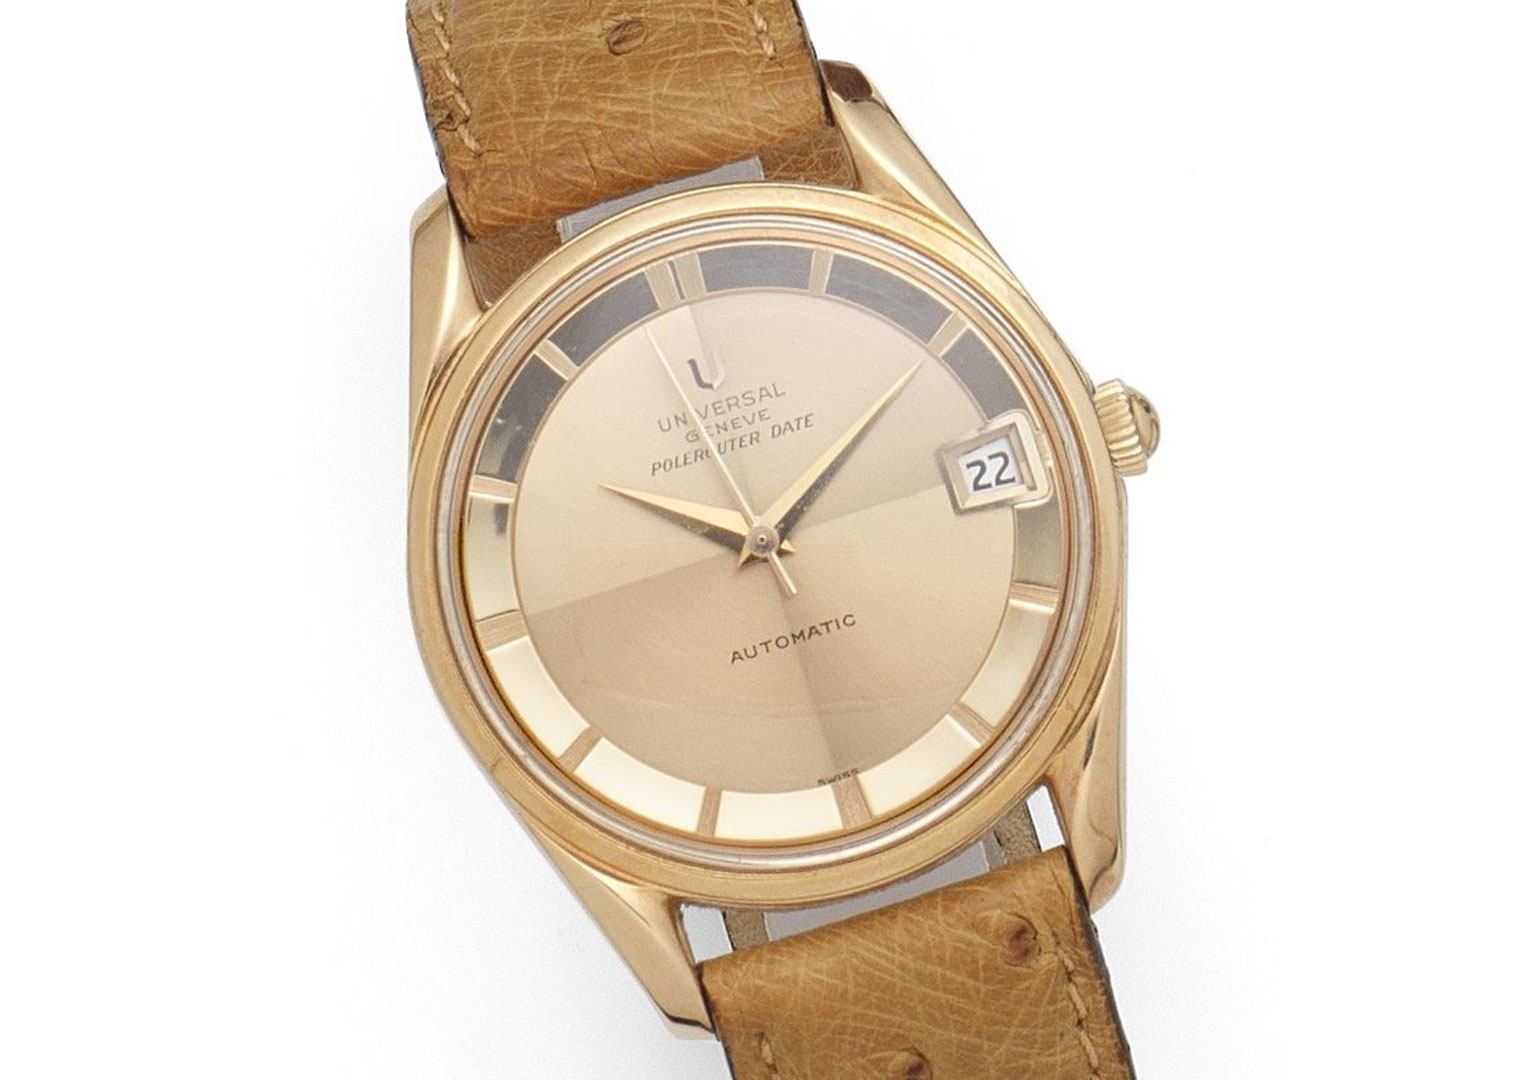 Universal Geneve's Polerouter is a vintage classic. Image courtesy of Bonhams.